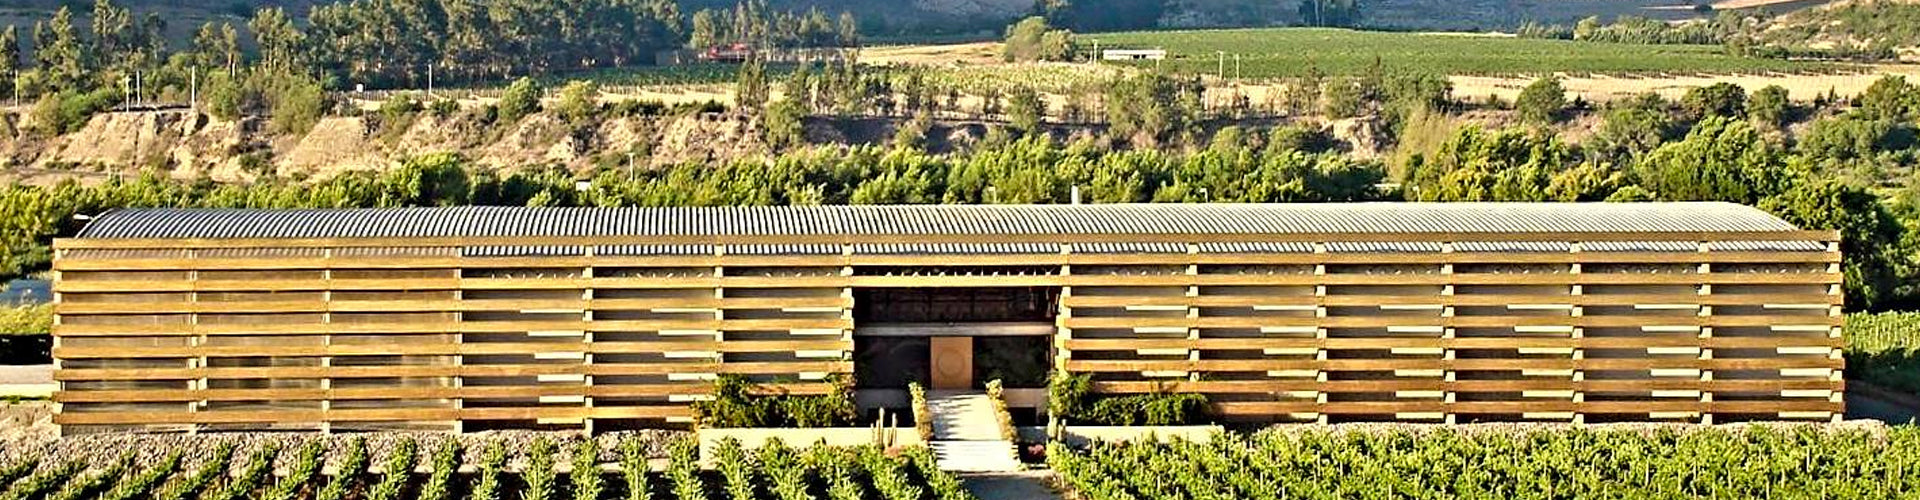 Viña Falernia Winery Building in the Elqui Valley